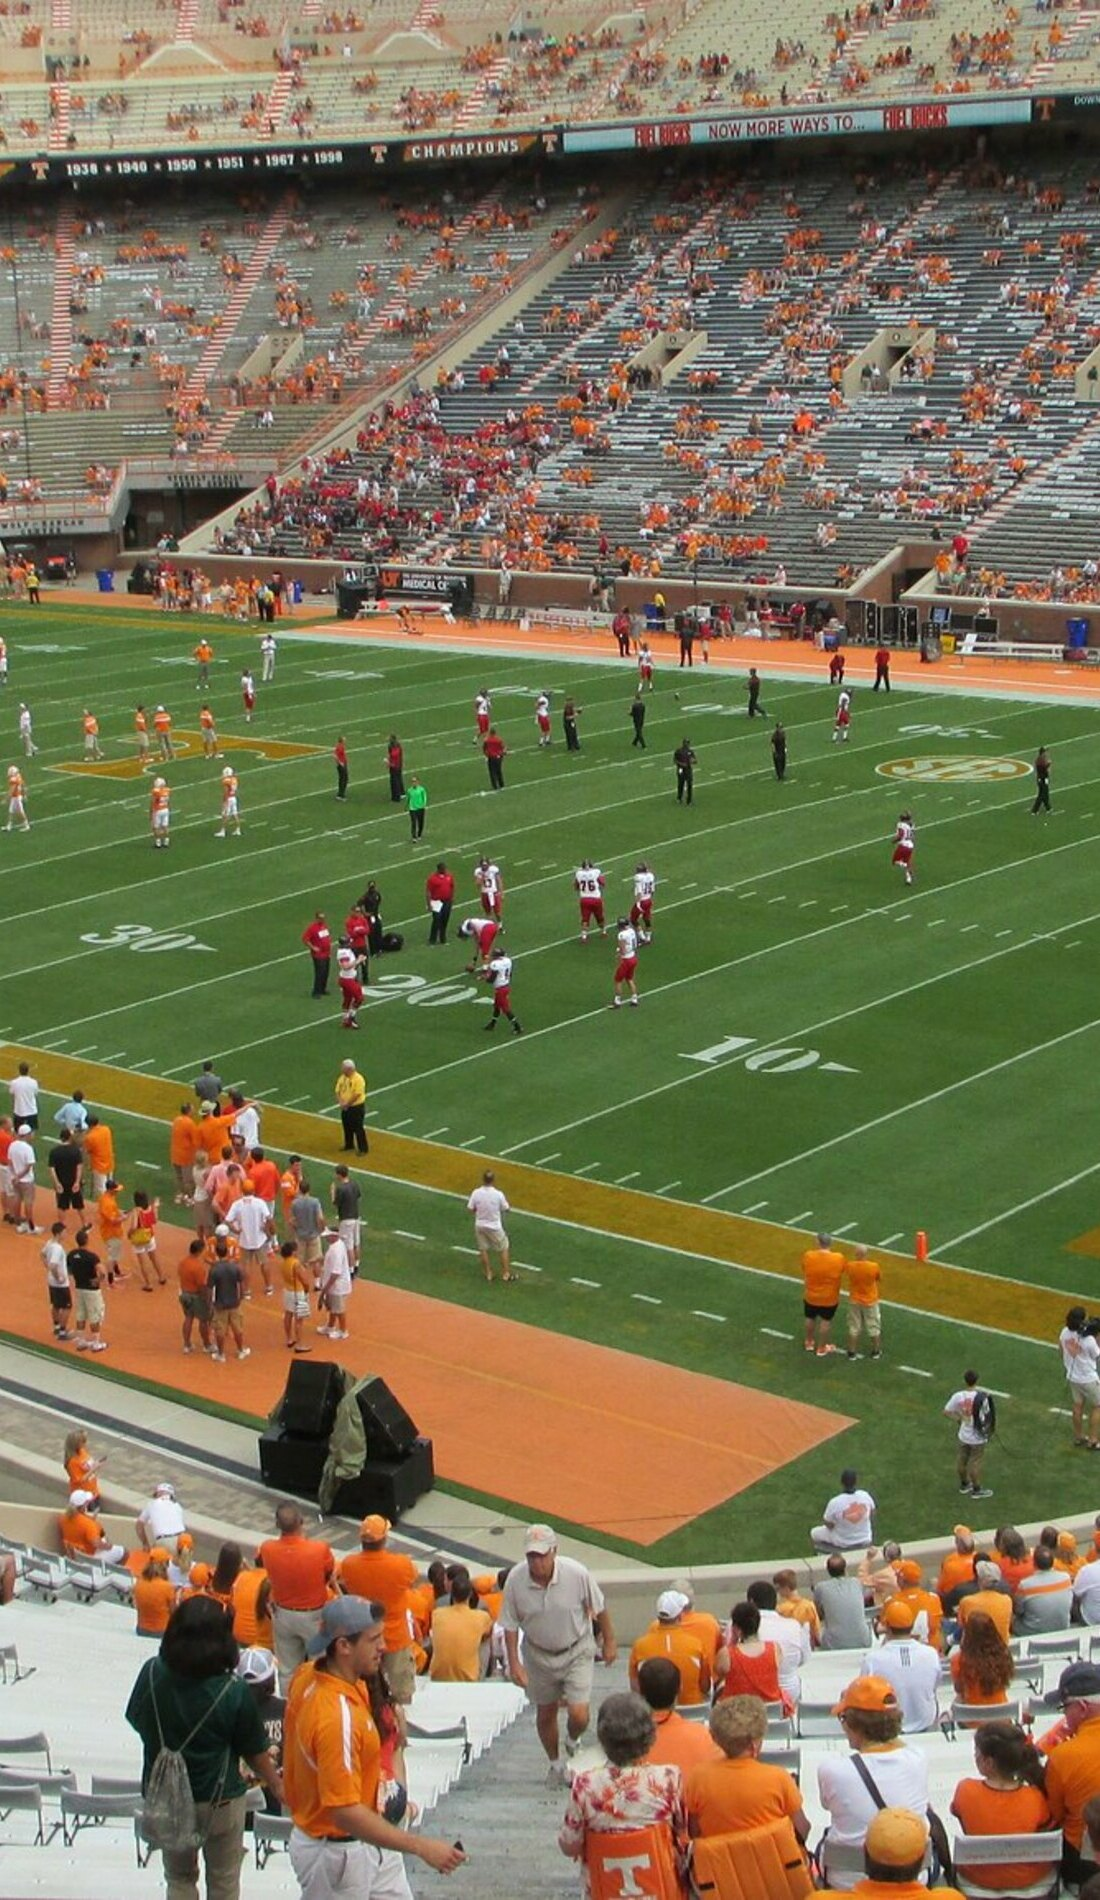 A Tennessee Volunteers Football live event